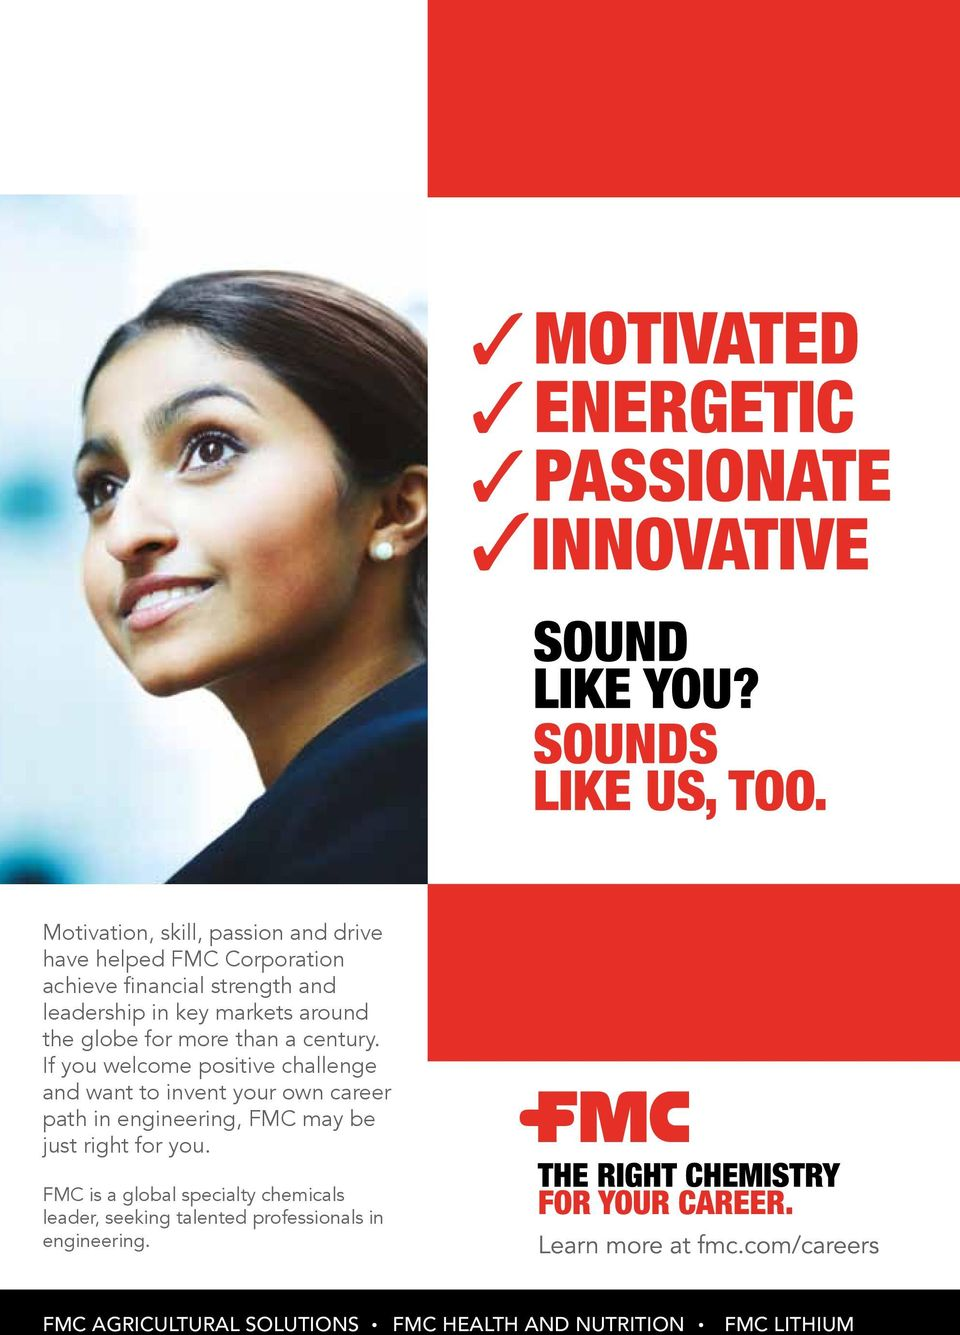 If you welcome positive challenge and want to invent your own career path in engineering, FMC may be just